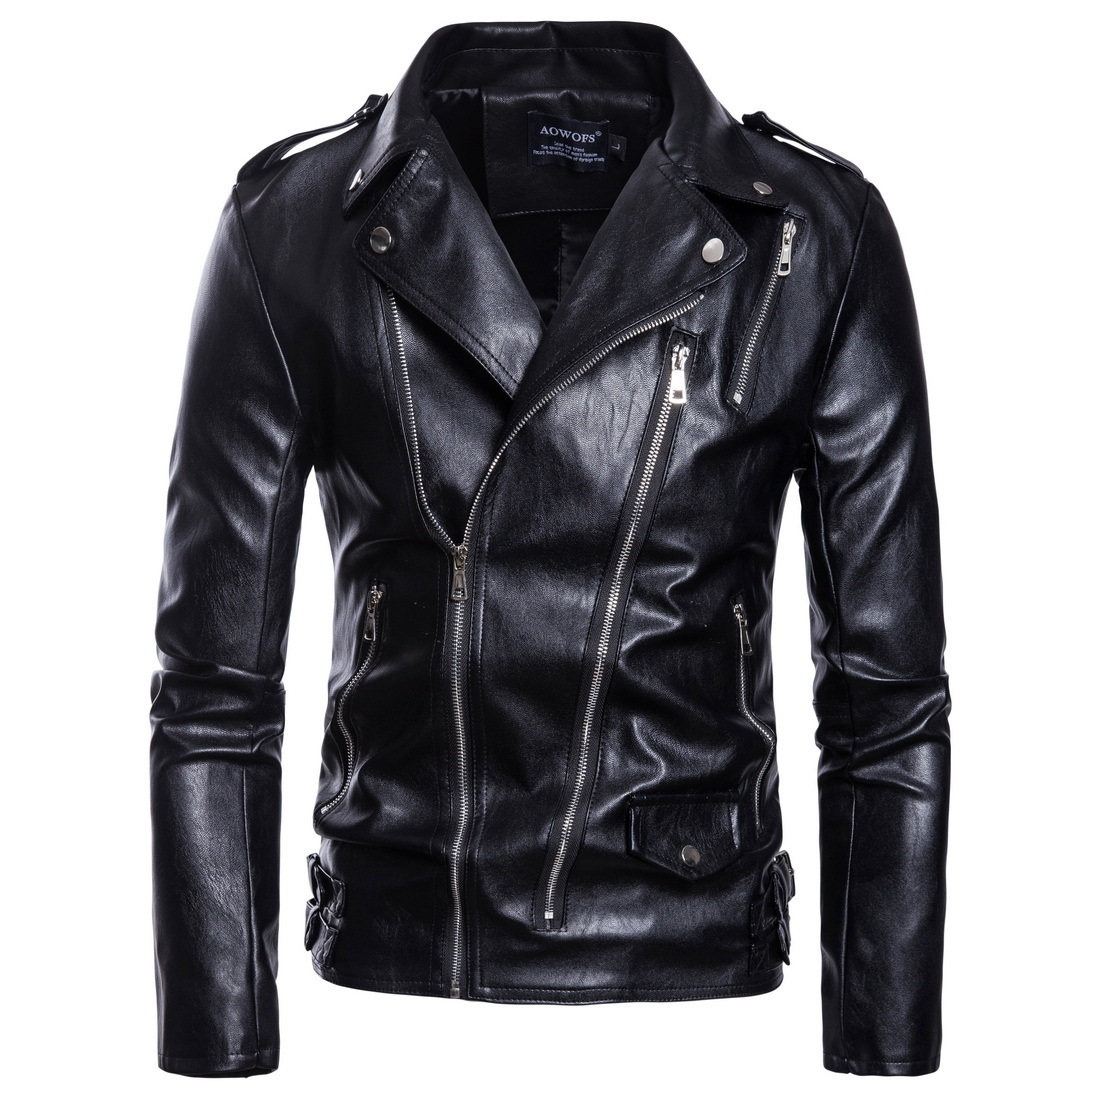 Sumitong men's autumn new style motorcycle large leather coat Dora chain leather jacket men's Korean version of lapel coat